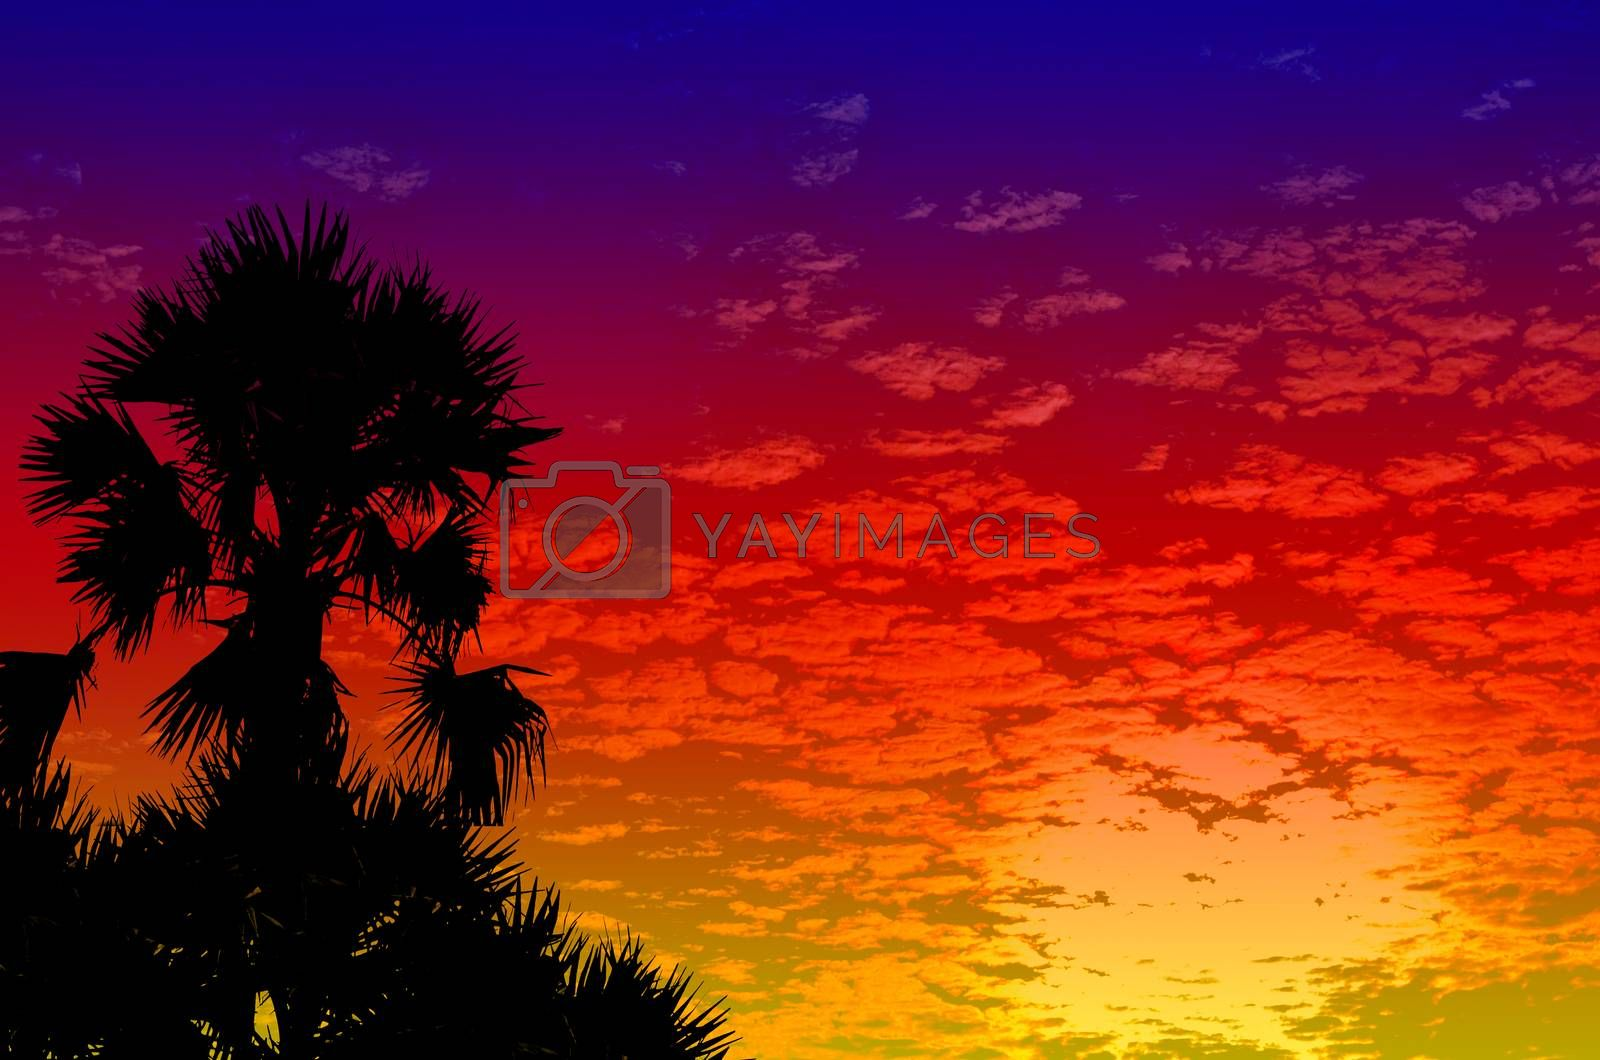 Royalty free image of palm trees sunset golden blue sky backlight by raweenuttapong